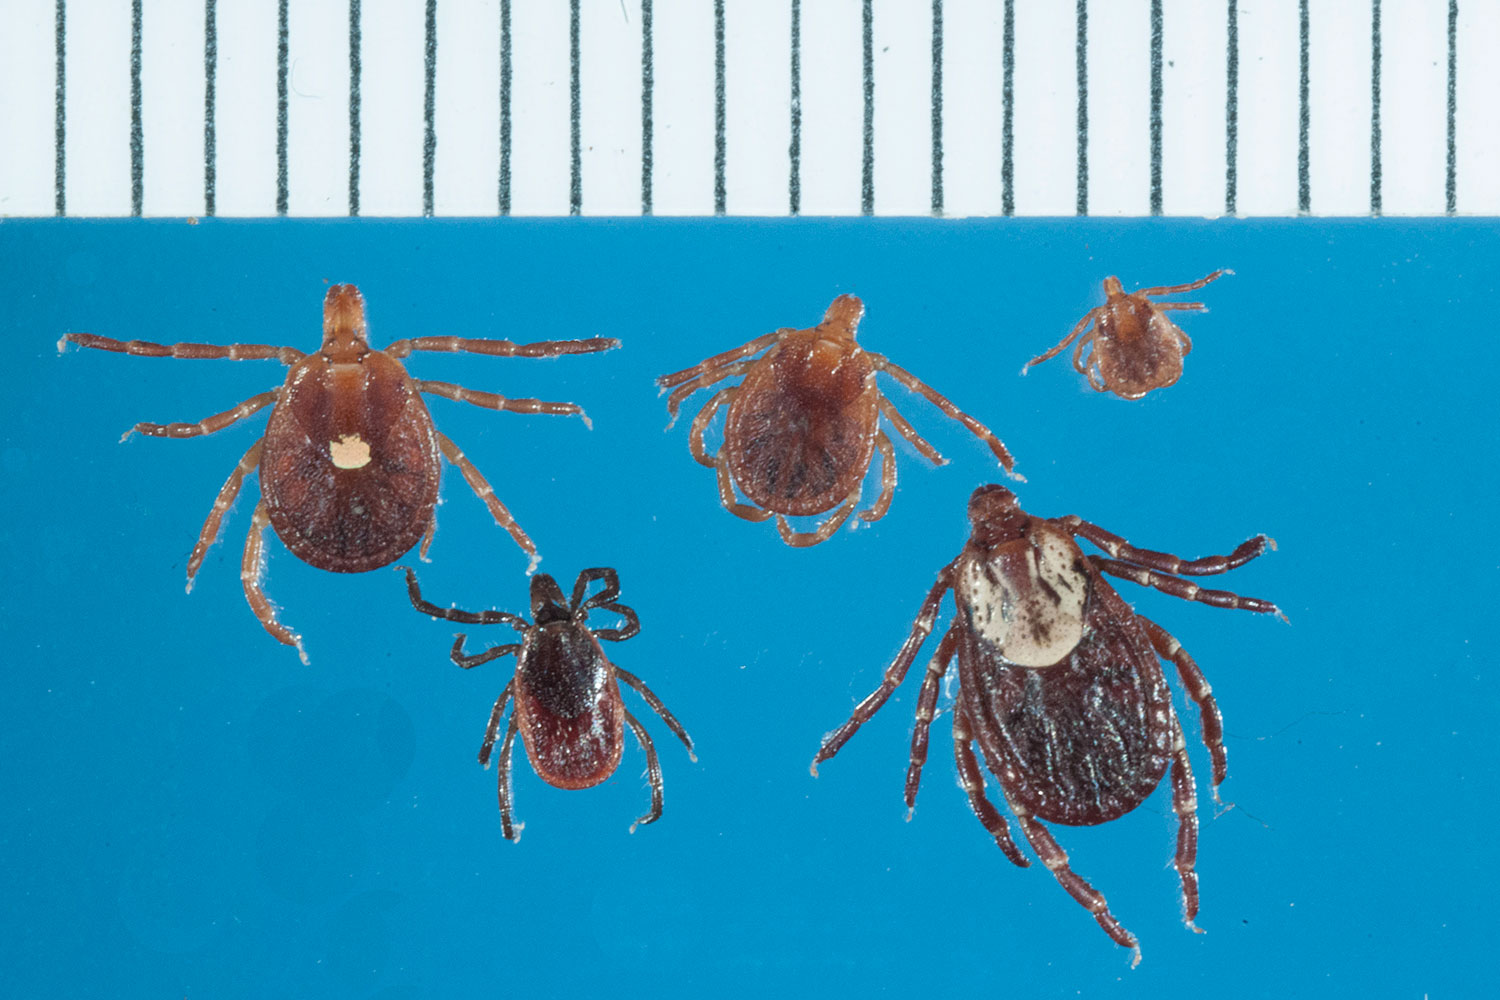 top row: lone star ticks, from left: adult female, nymph, larva  note  rounded body shape  bottom row: blacklegged (deer) tick adult female (left)  and